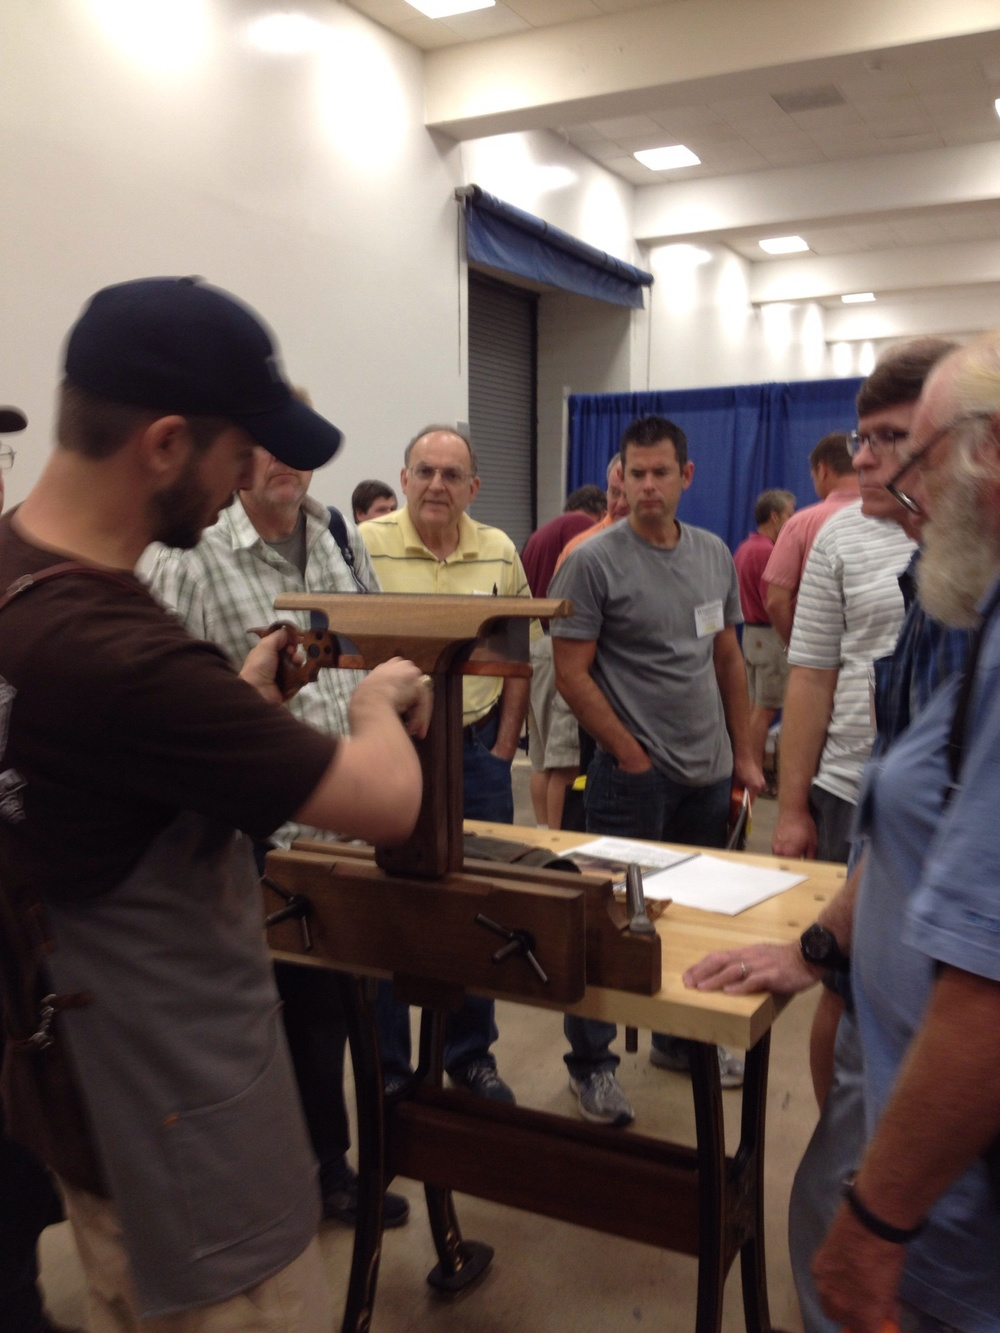 Drawing a crowd as I demonstrate our Saw Vise prototype.